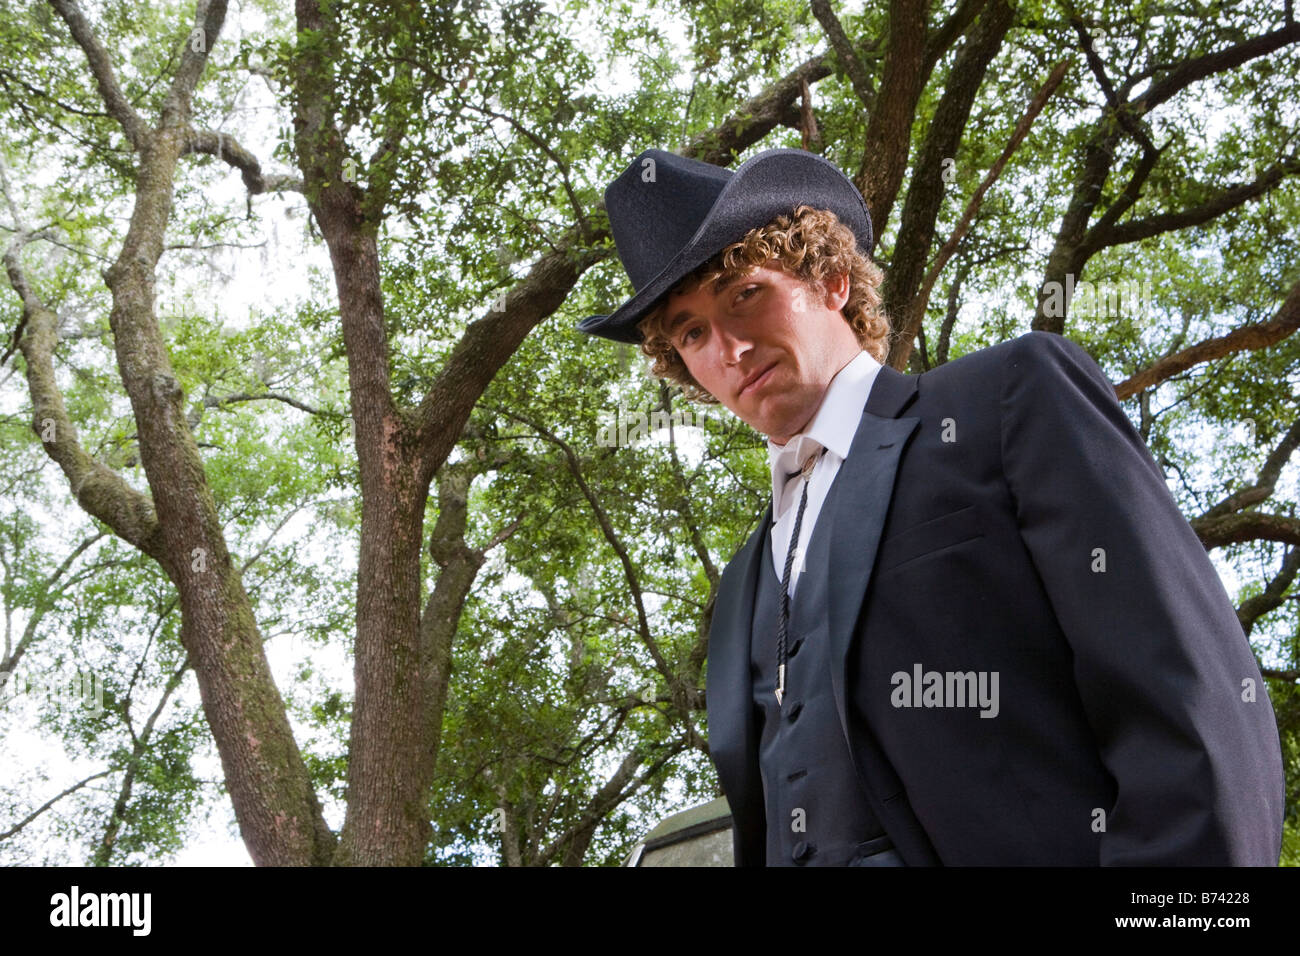 Portrait of young cowboy wearing full suit and cowboy hat outdoors - Stock Image